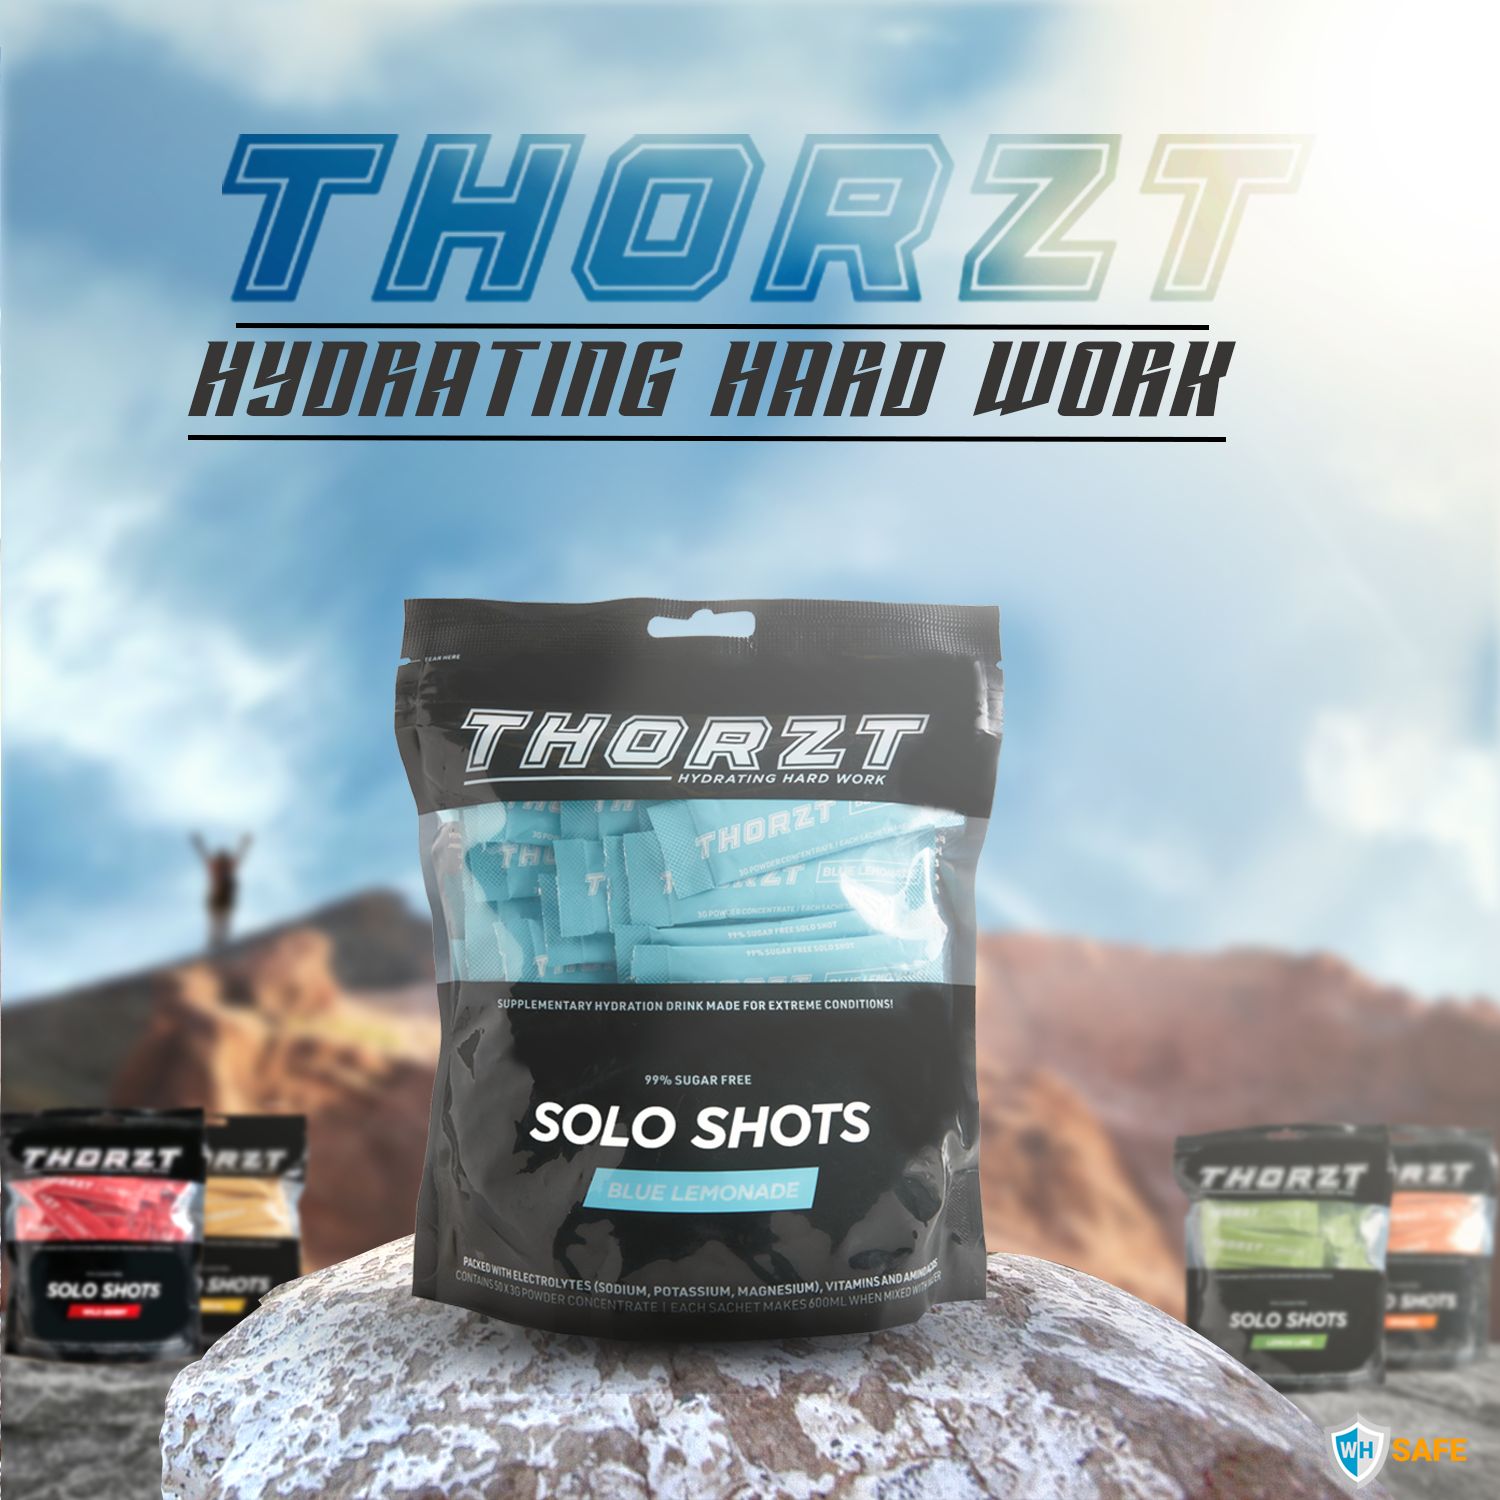 Thorzt Sugar-Free Solo Shot Electrolytes - Blue Lemonade 50 x 3g